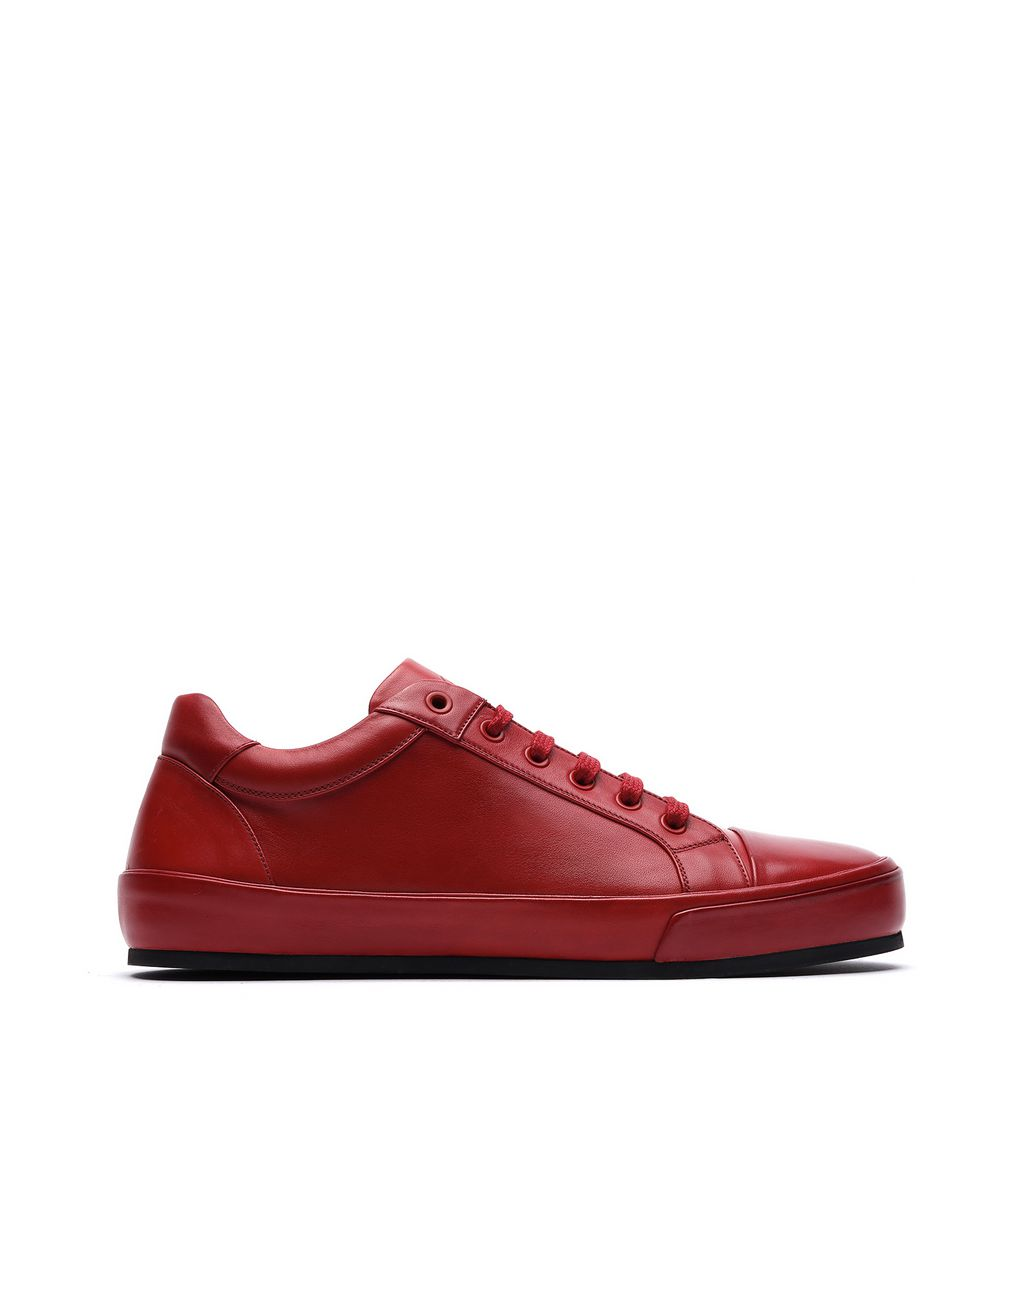 BRIONI Red Sneaker Sneakers Man f